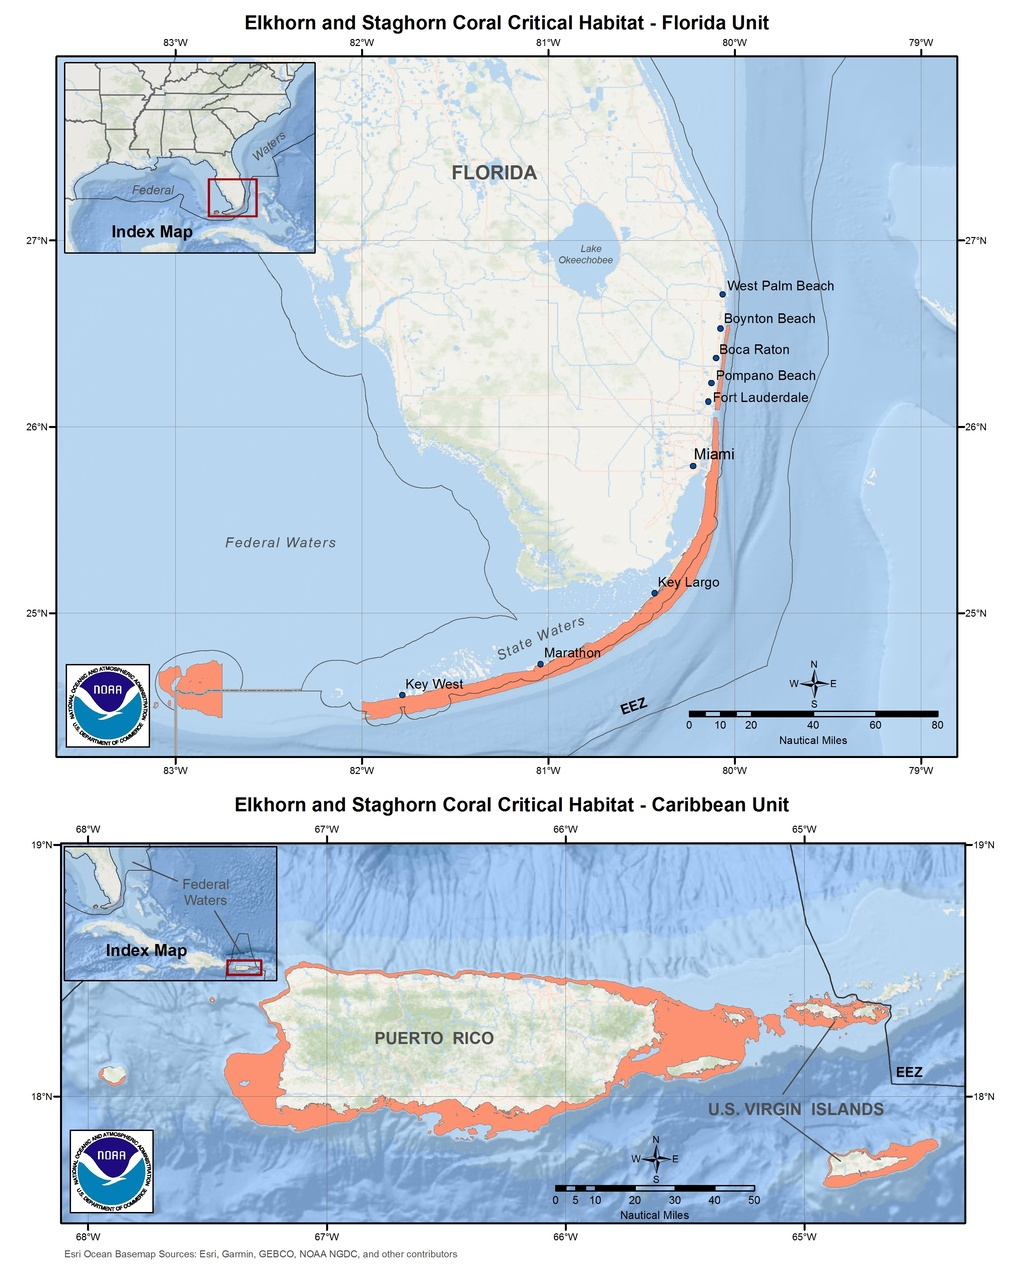 This is a map of elkhorn and staghorn coral critical habitat in Florida and the Caribbean.